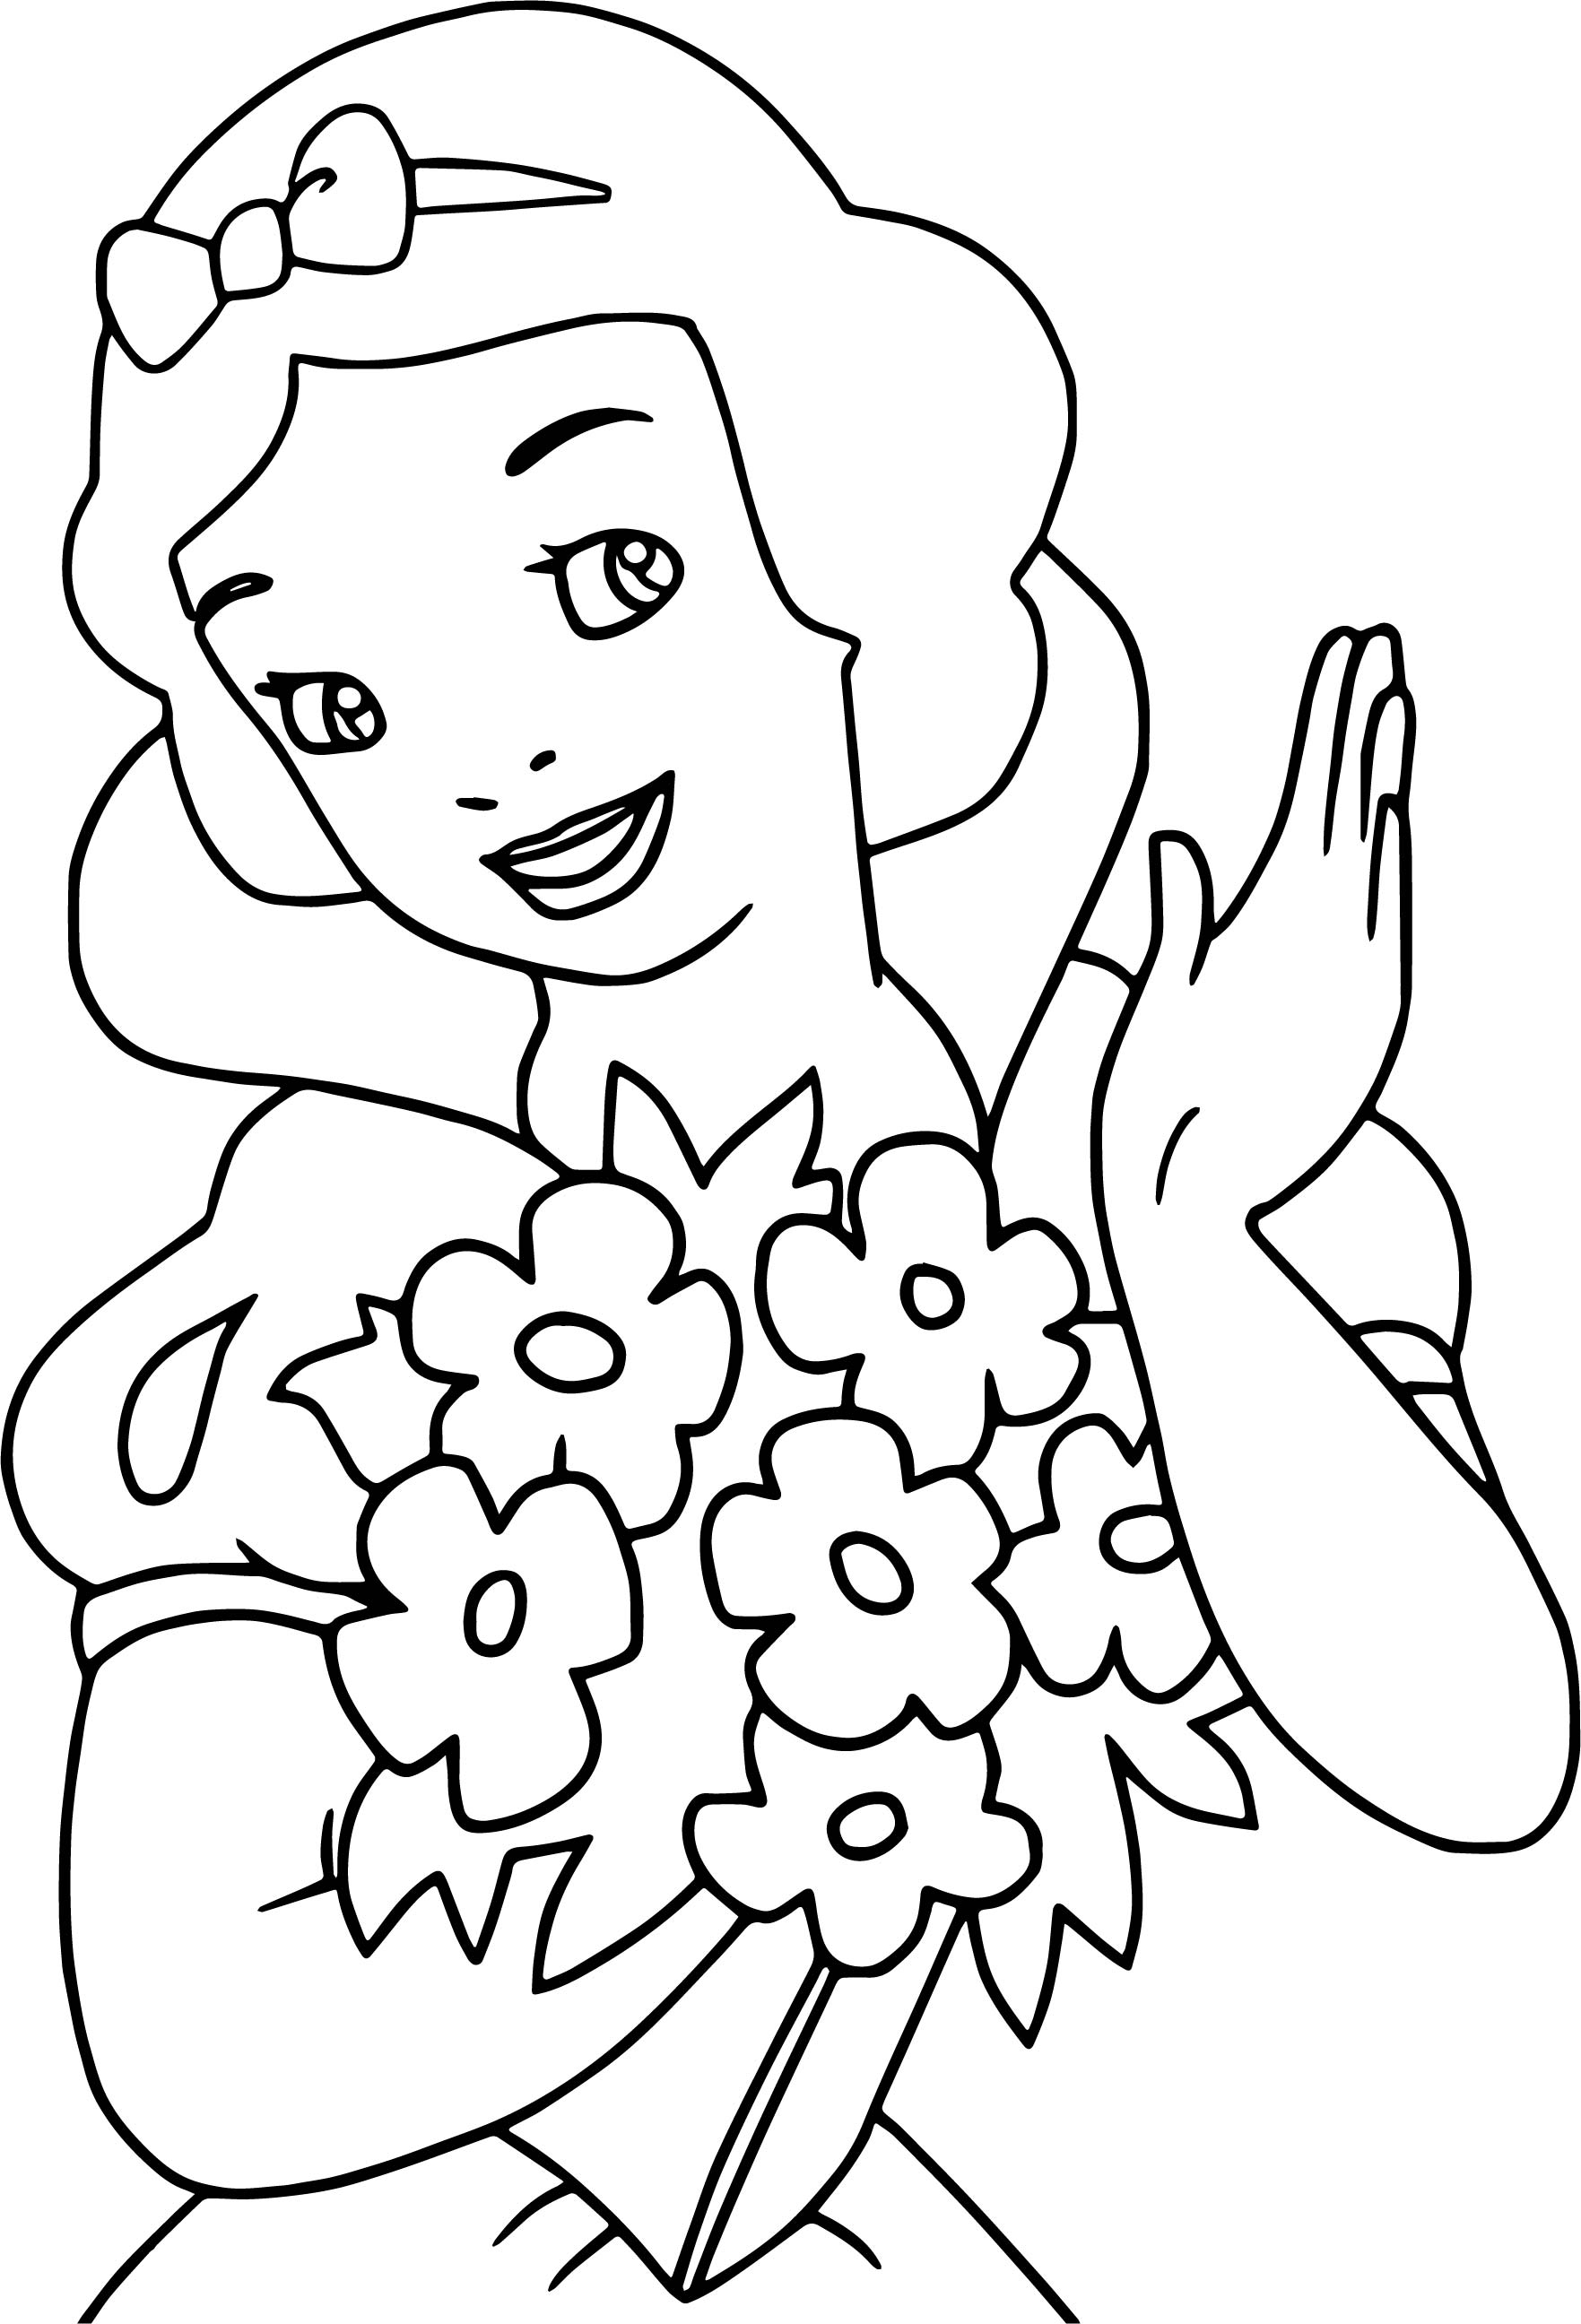 Snow White Bucket Flower Coloring Page